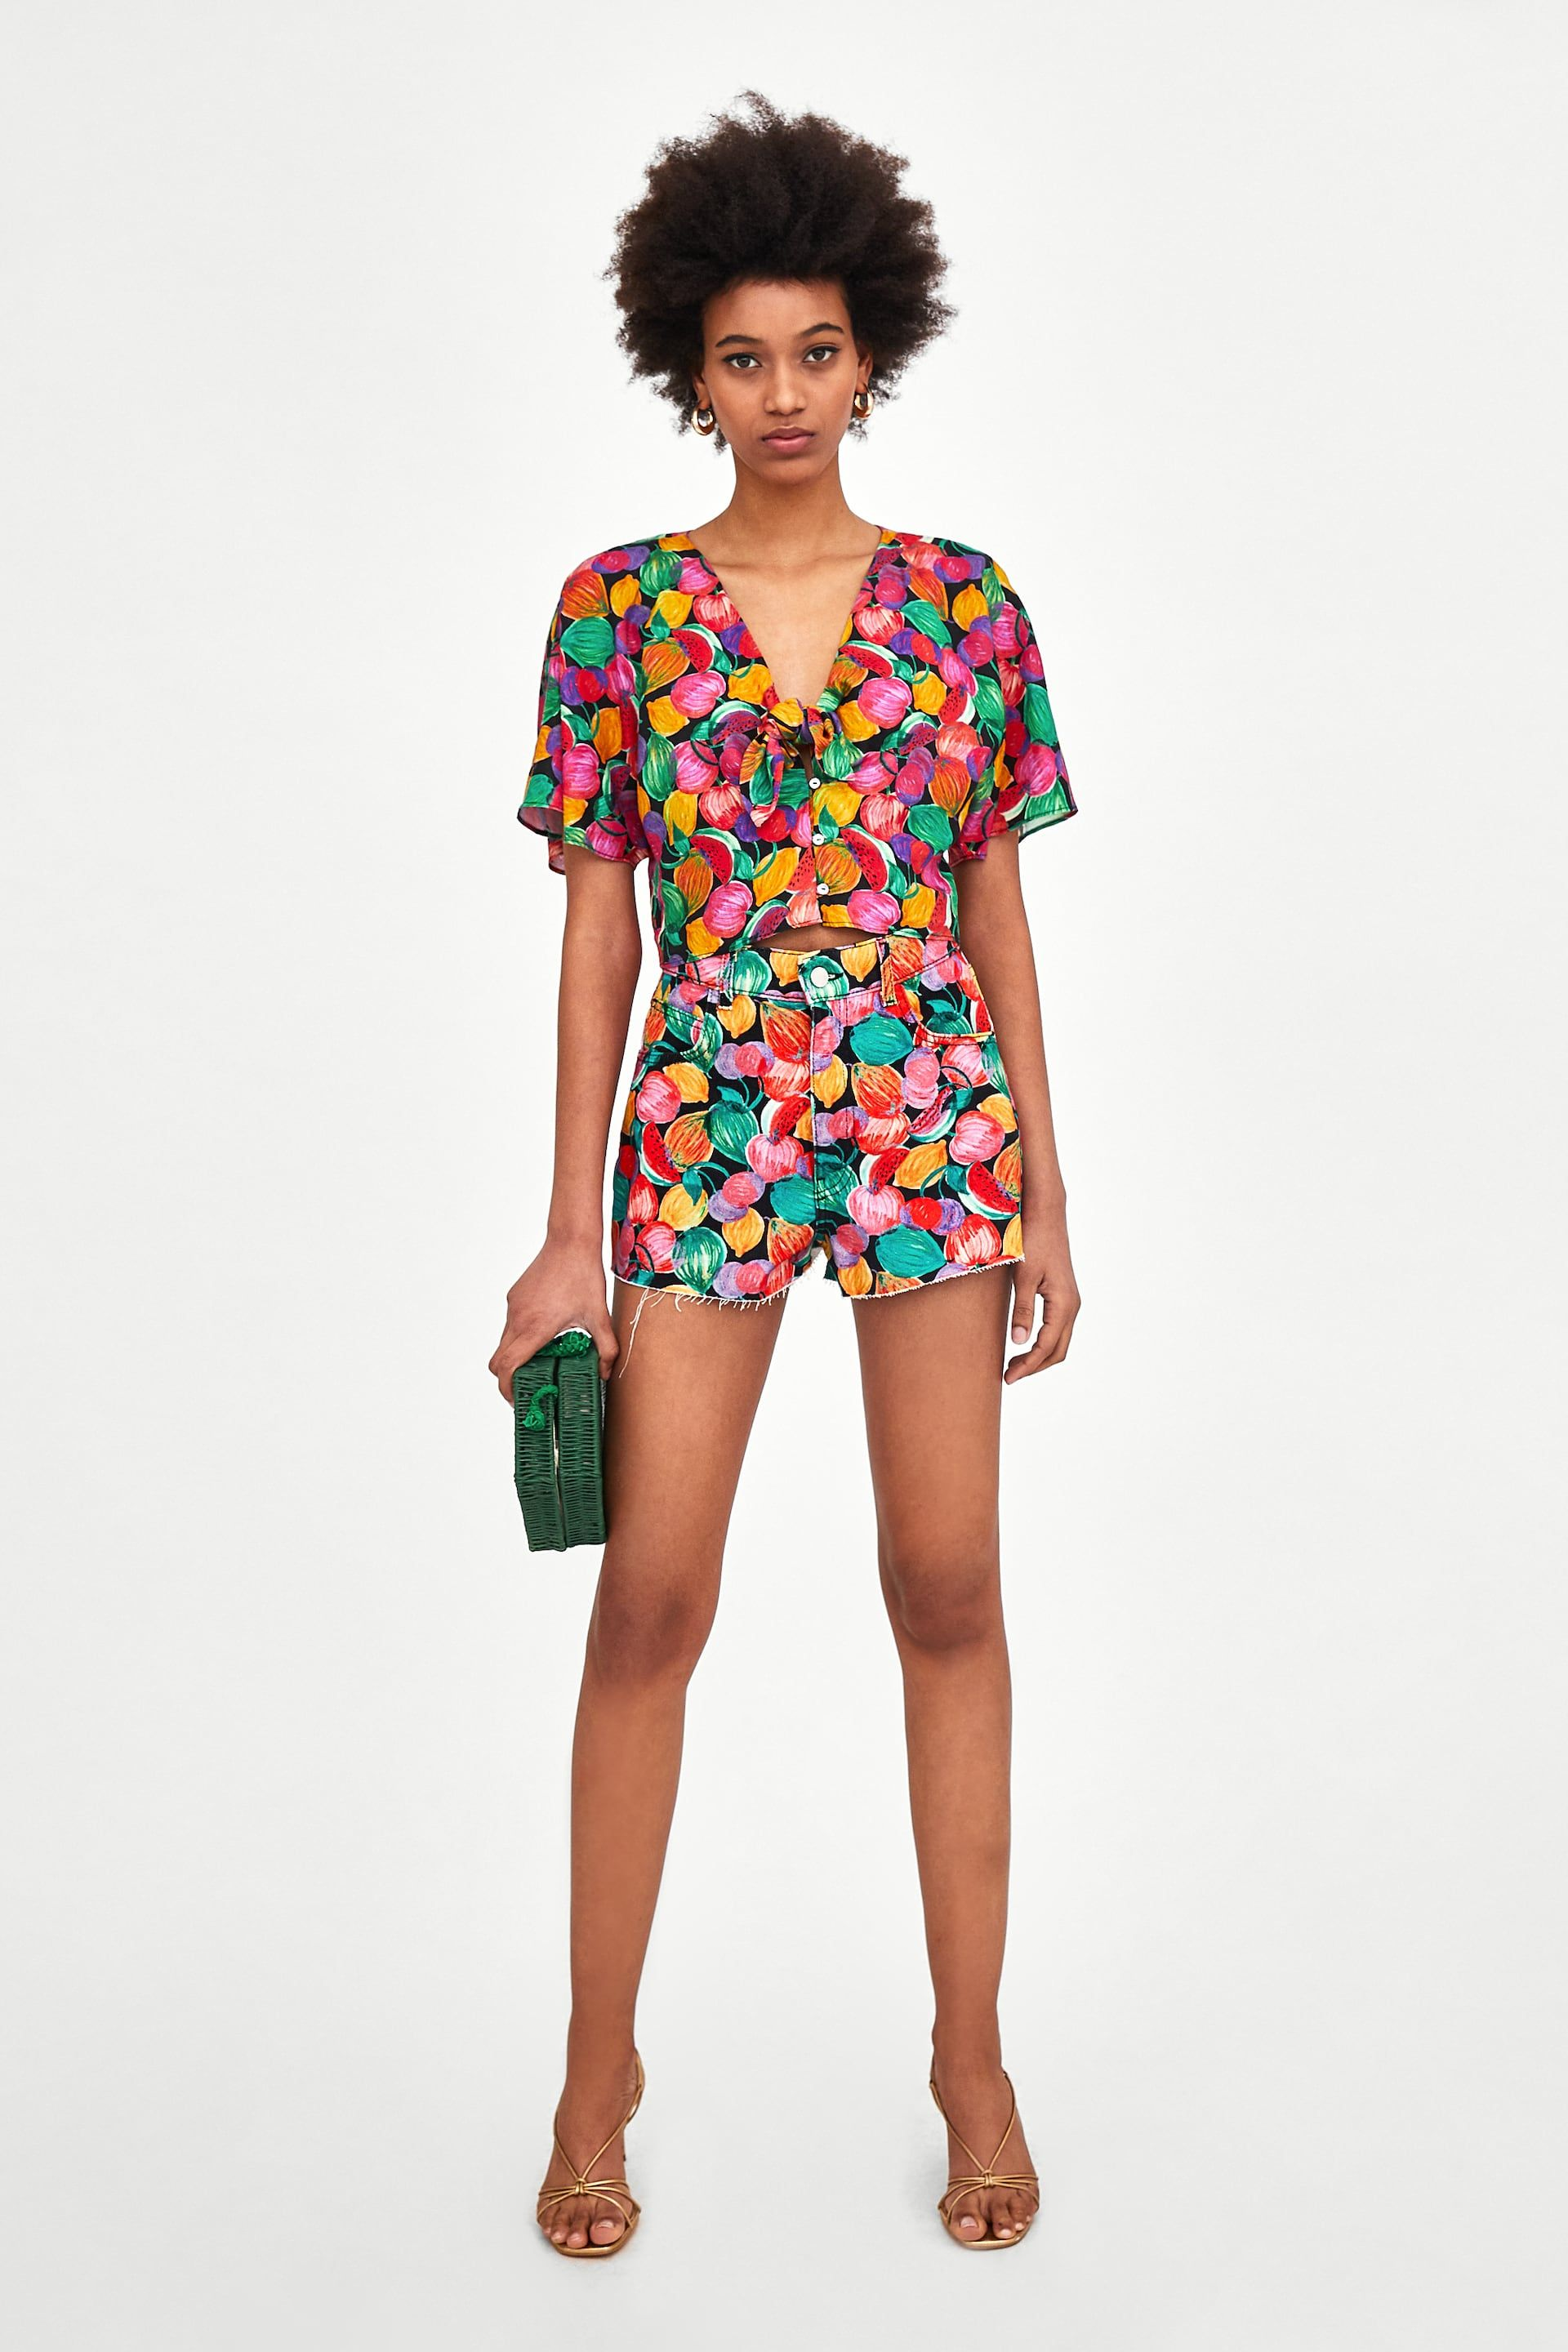 e05687f21e45b ZARA - WOMAN - HI-RISE PRINTED DENIM SHORTS